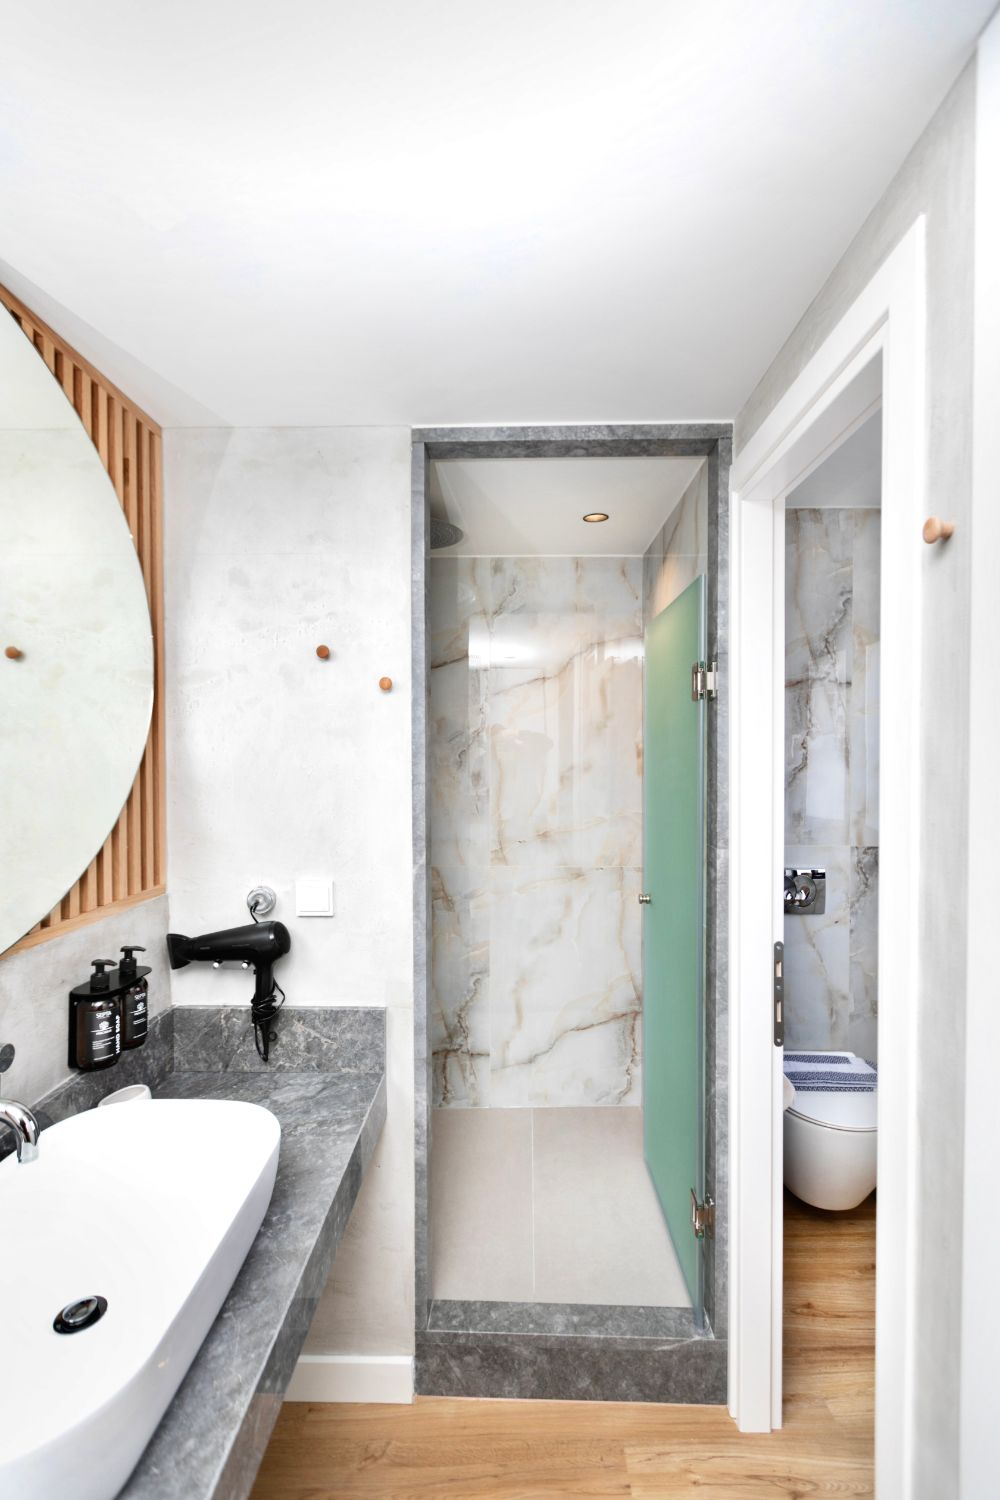 #707 Bathroom with WC and Shower